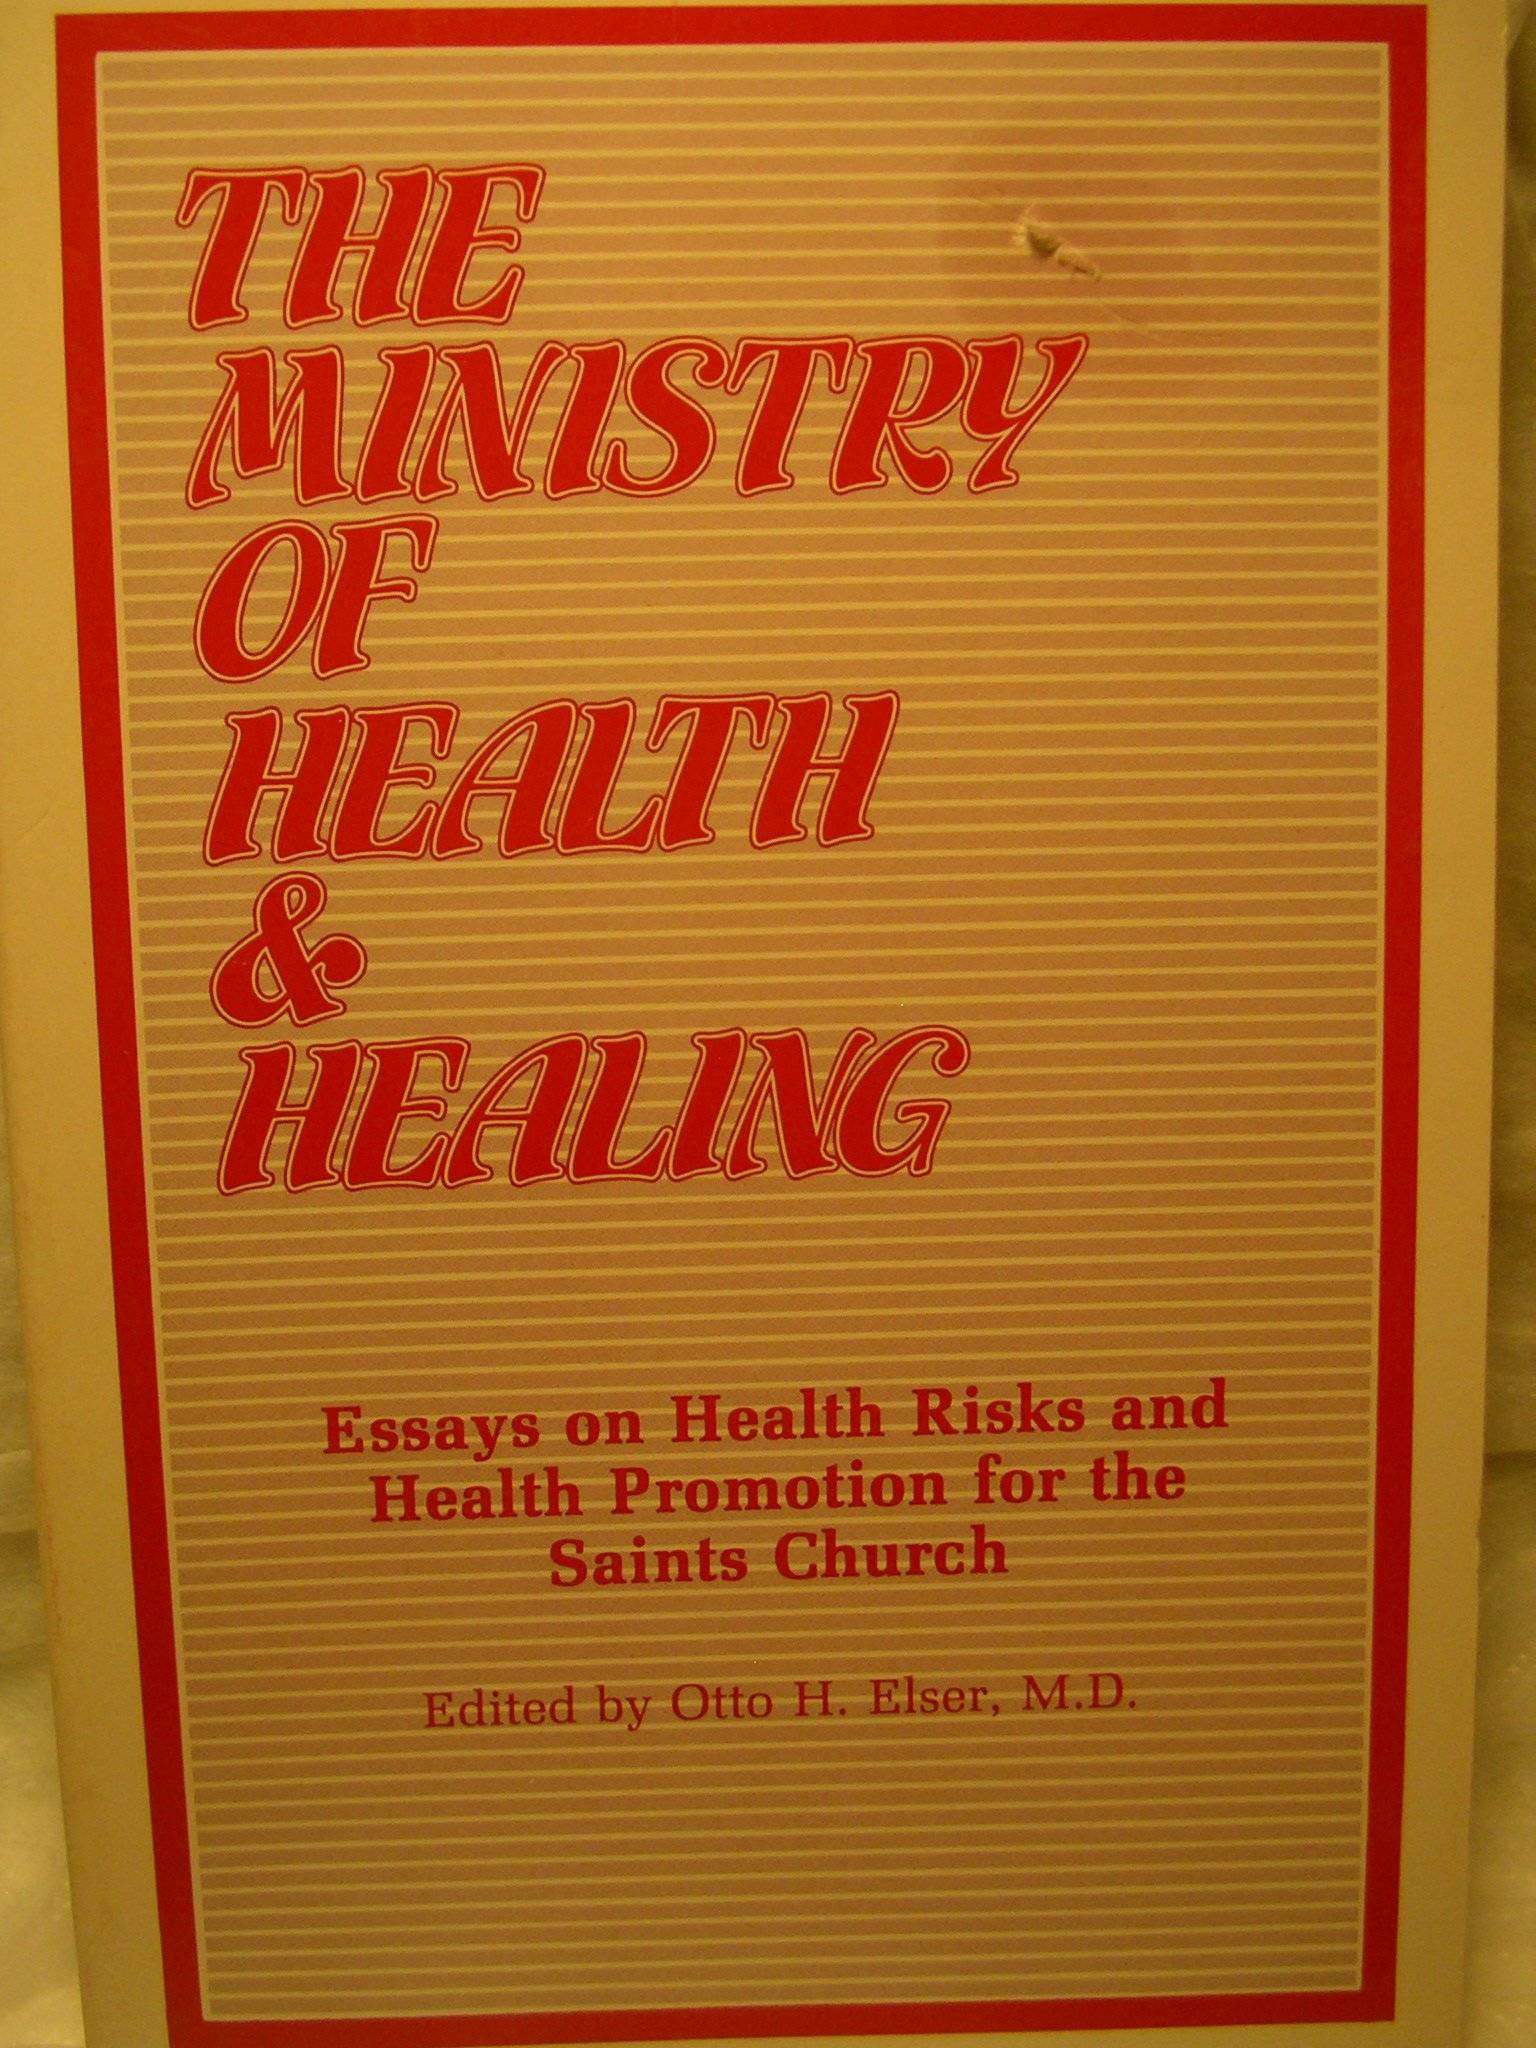 The Ministry Of Health  Healing Essays On Health Risks And Health  The Ministry Of Health  Healing Essays On Health Risks And Health  Promotion For The Saints Church Otto H Elser  Amazoncom  Books